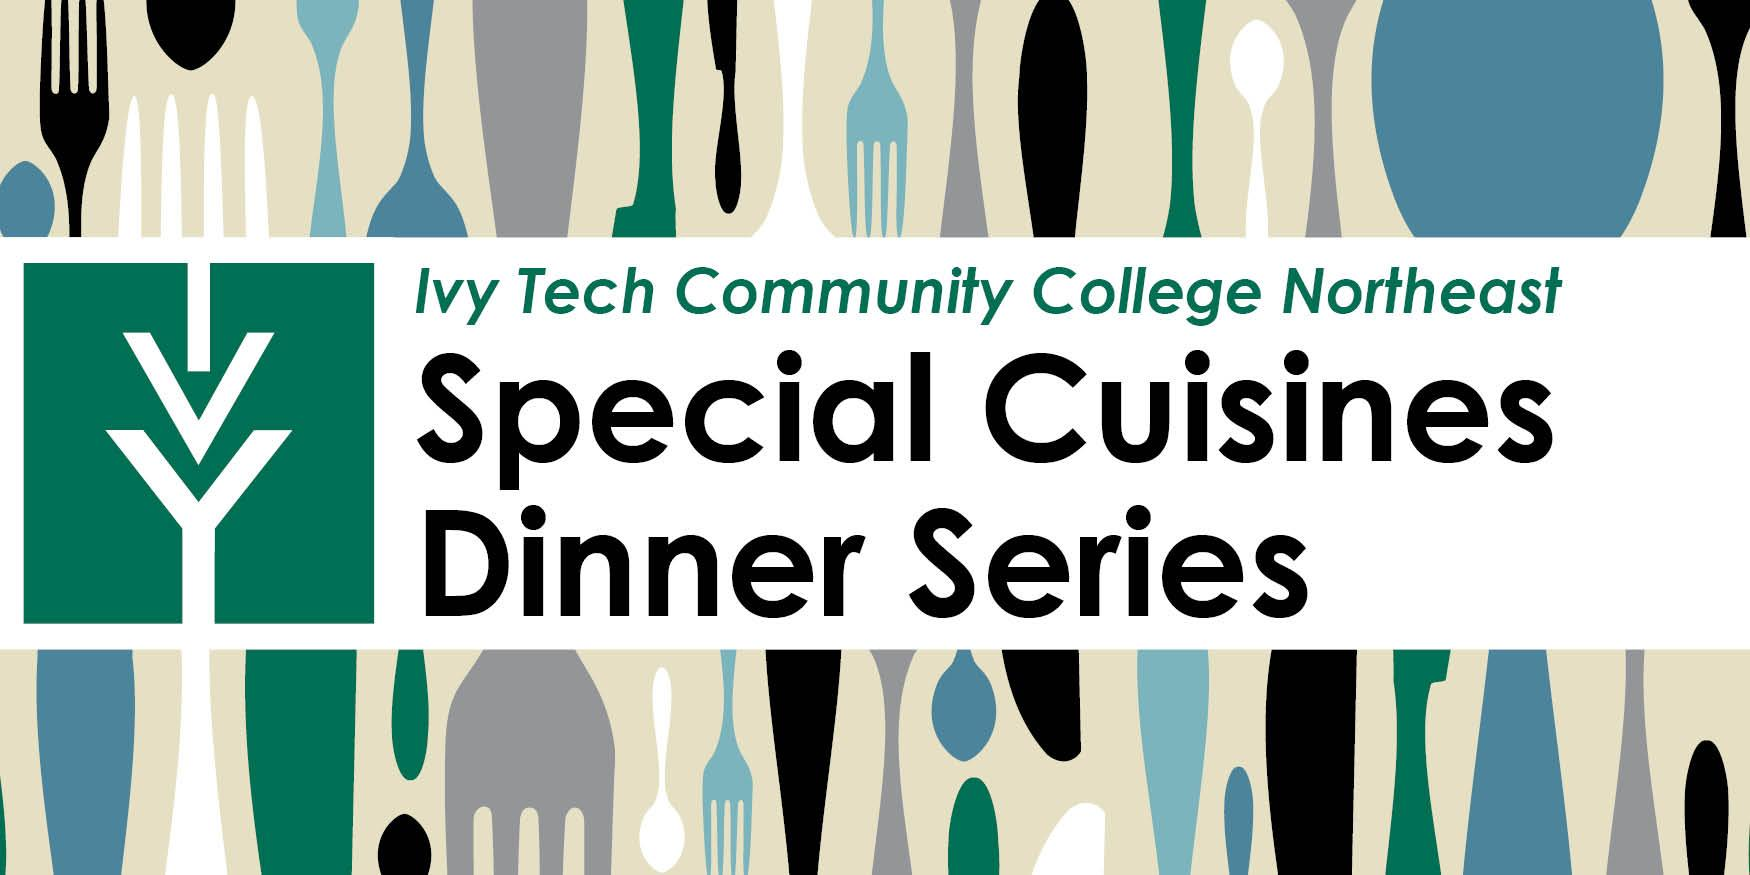 Ivy Tech Northeast's 2017 Special Cuisines